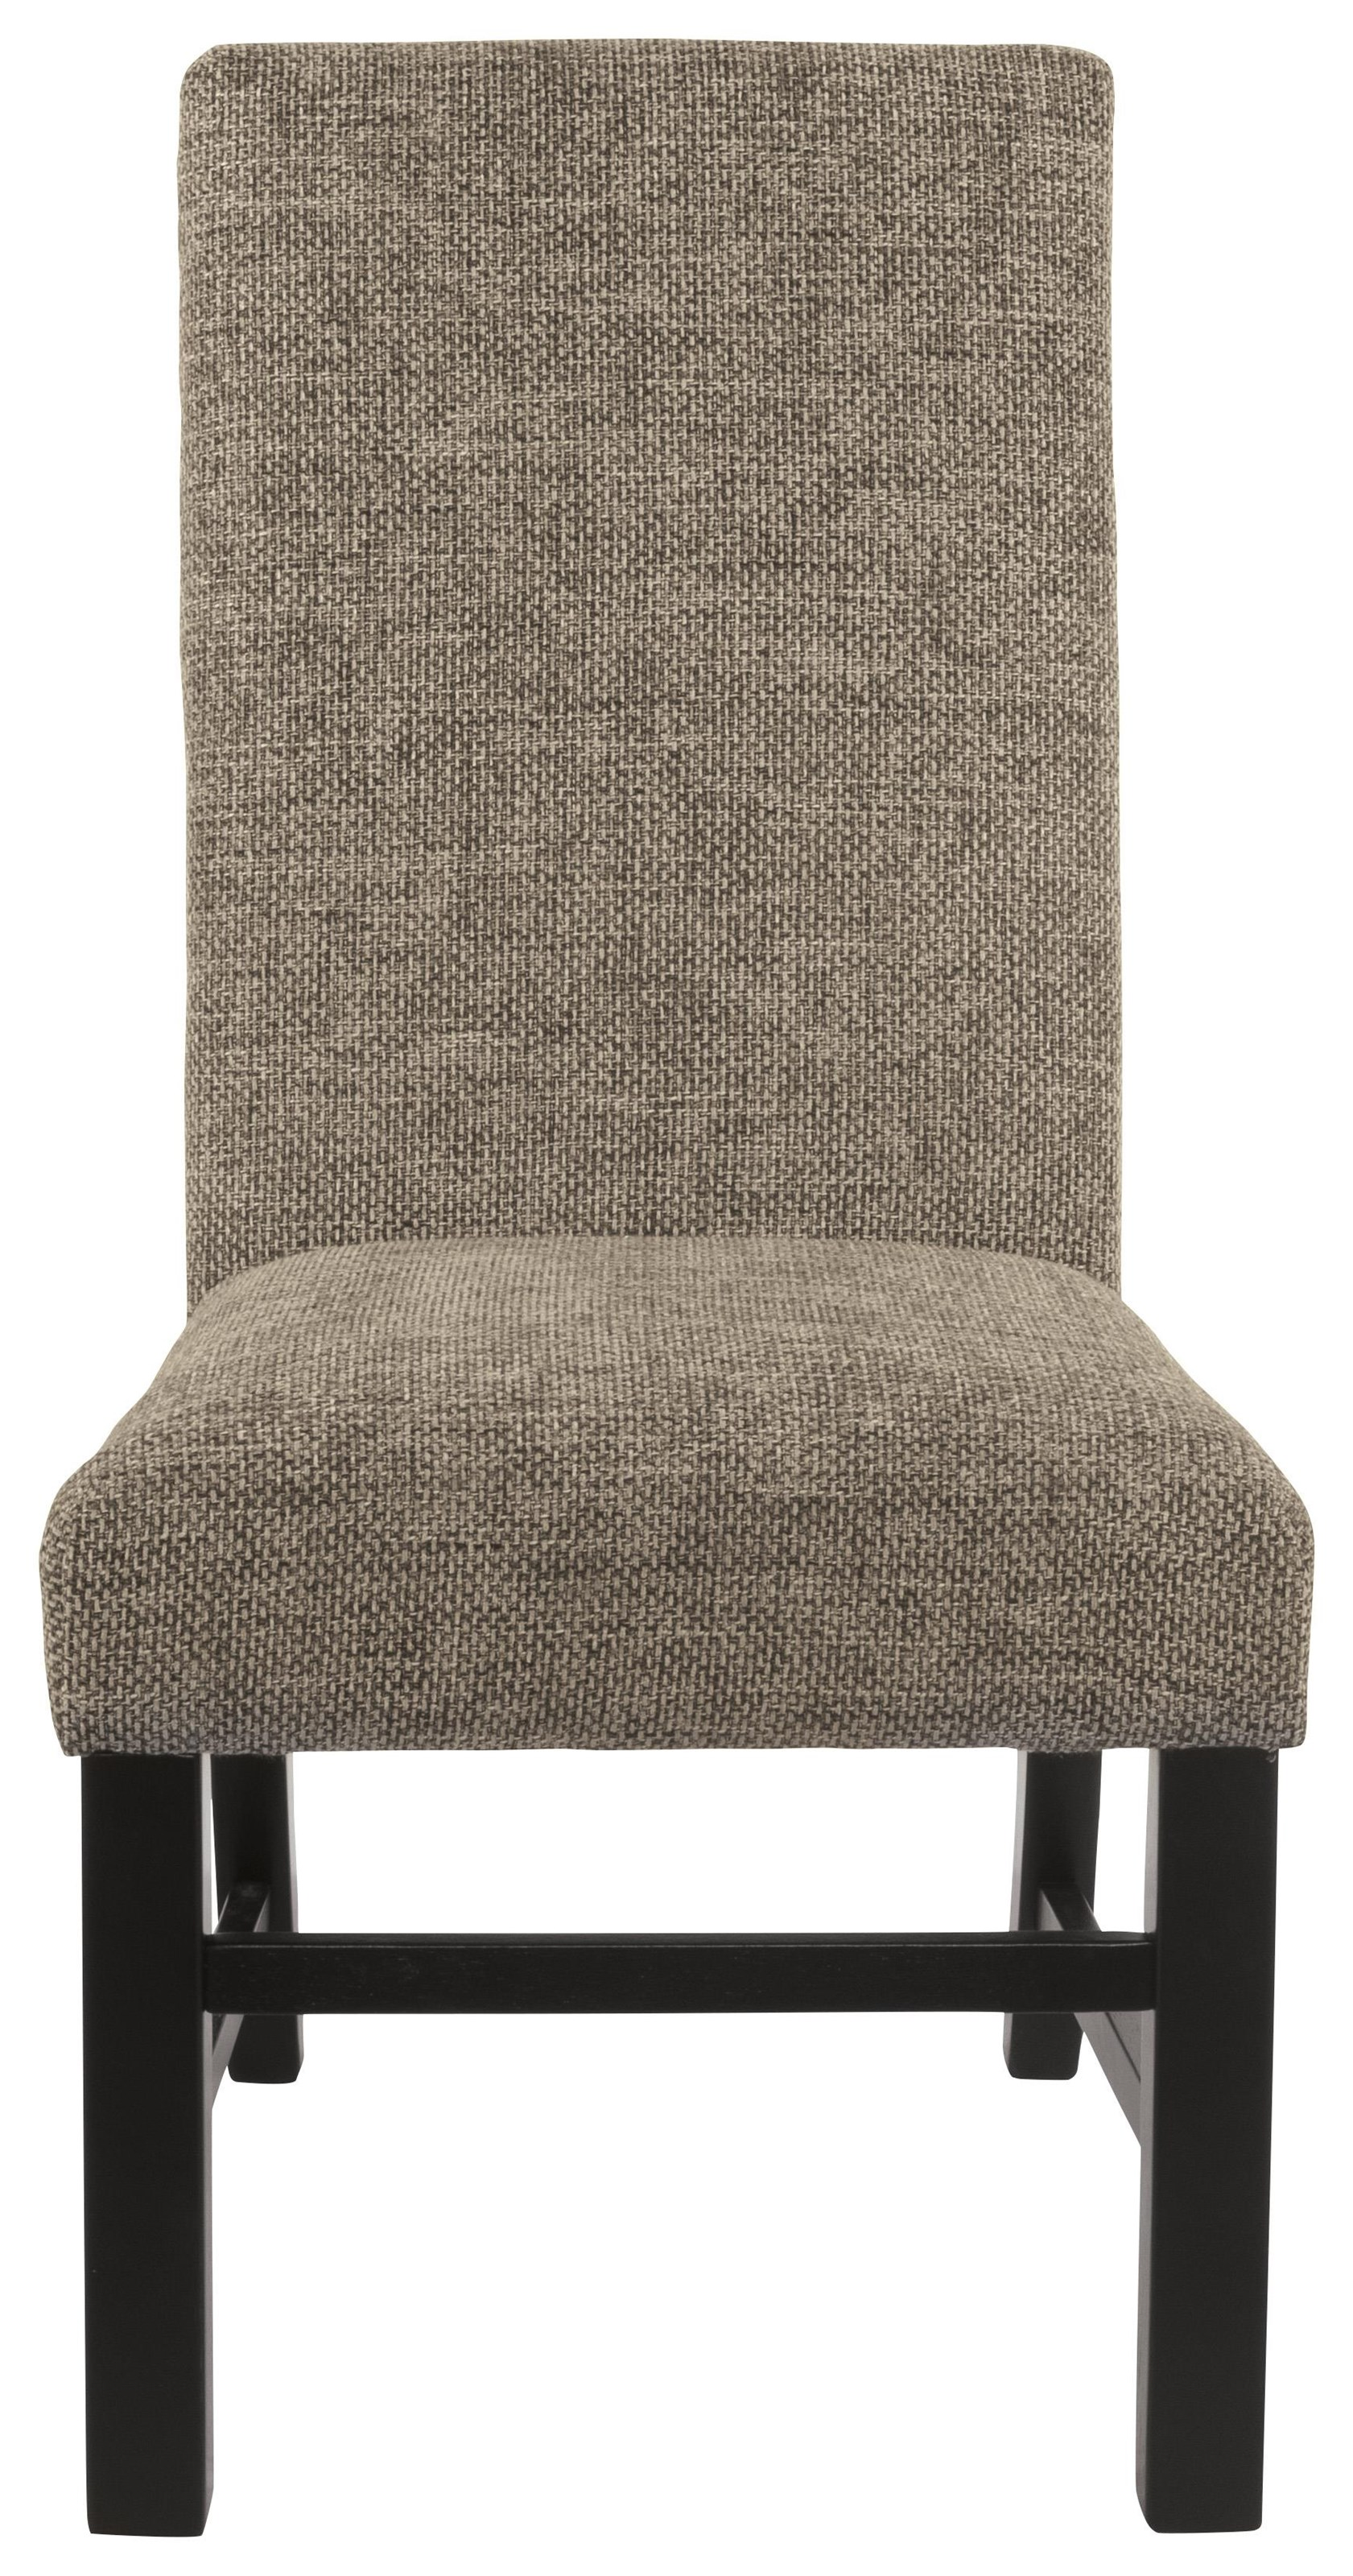 Sommerford Somerford Dining Side Chair by Ashley at Morris Home